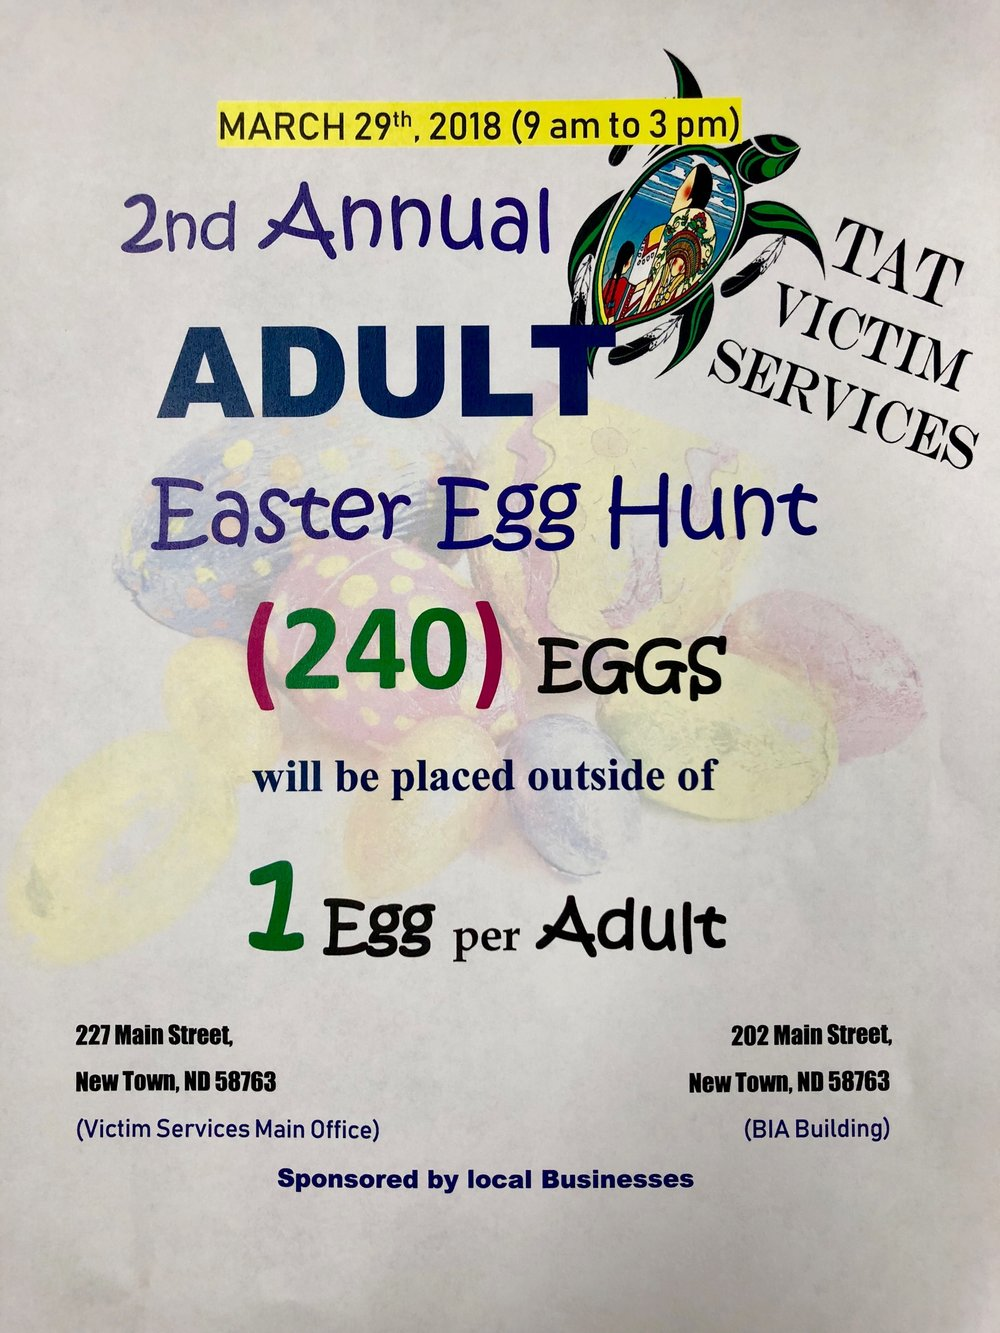 TAT Victim Services 2nd Annual Adult Easter Egg Hunt.jpg